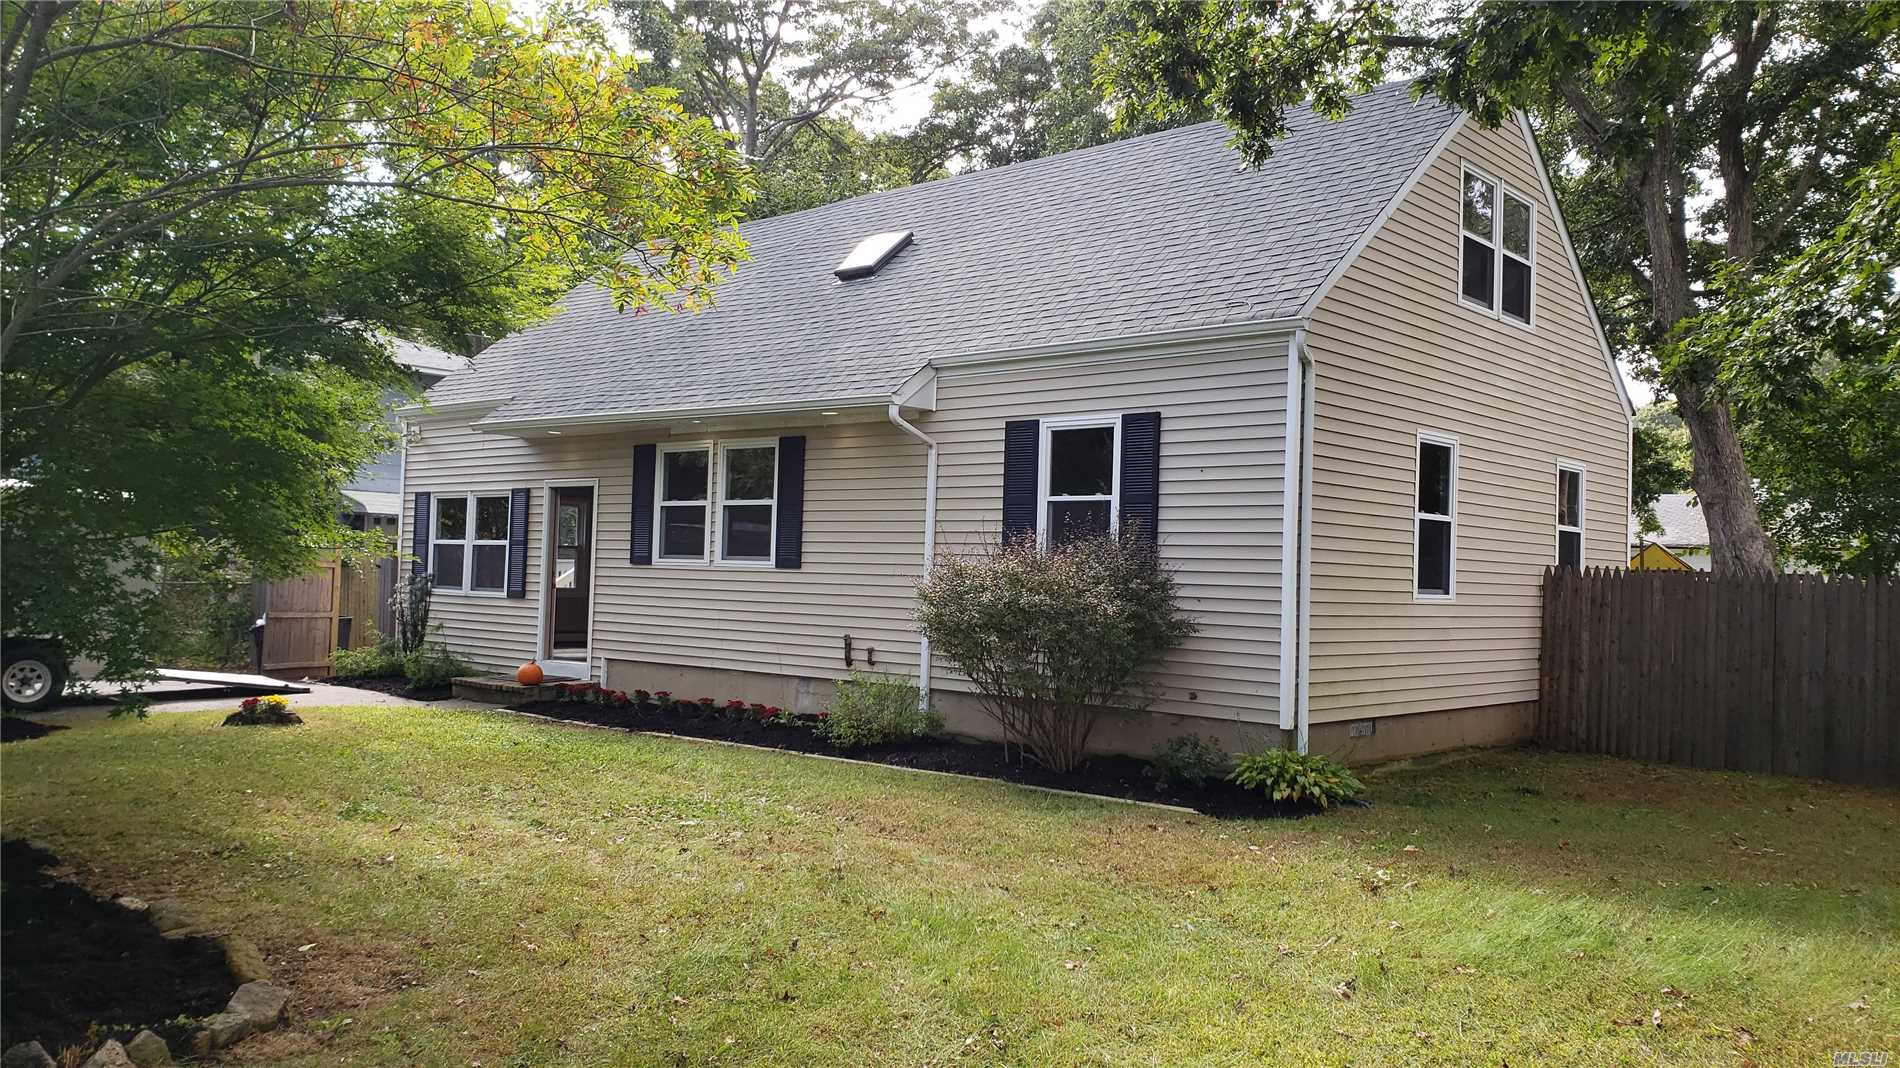 Unique Charming Cape, Completely Renovated..Top To Bottom, Roof, Siding, Flooring Bathrooms Custom Kitchen W Granite Counter, Stone Back Splash, Recess Lighting, Stainless Steel Appliances...2.5 Baths. Please Verify All Information